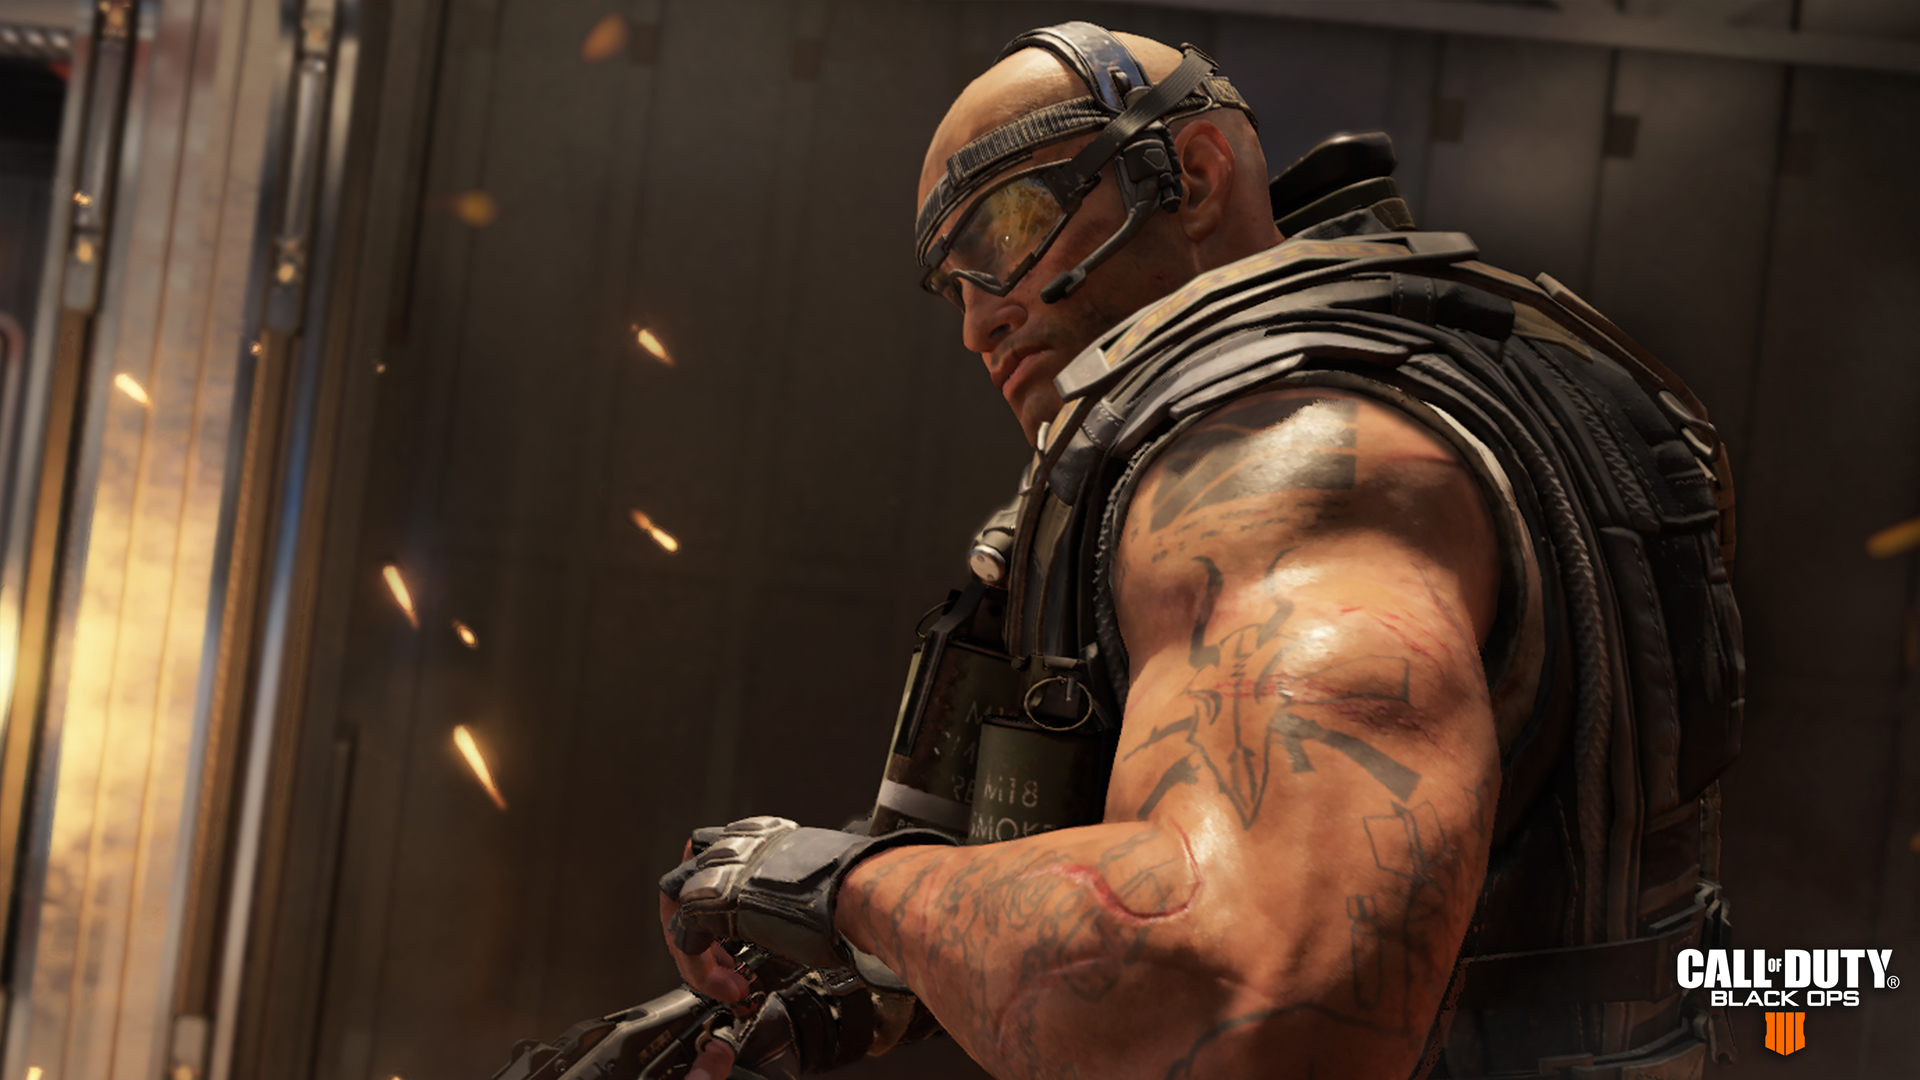 Call of Duty Black Ops 4 Screenshot #2. Bild: Activision